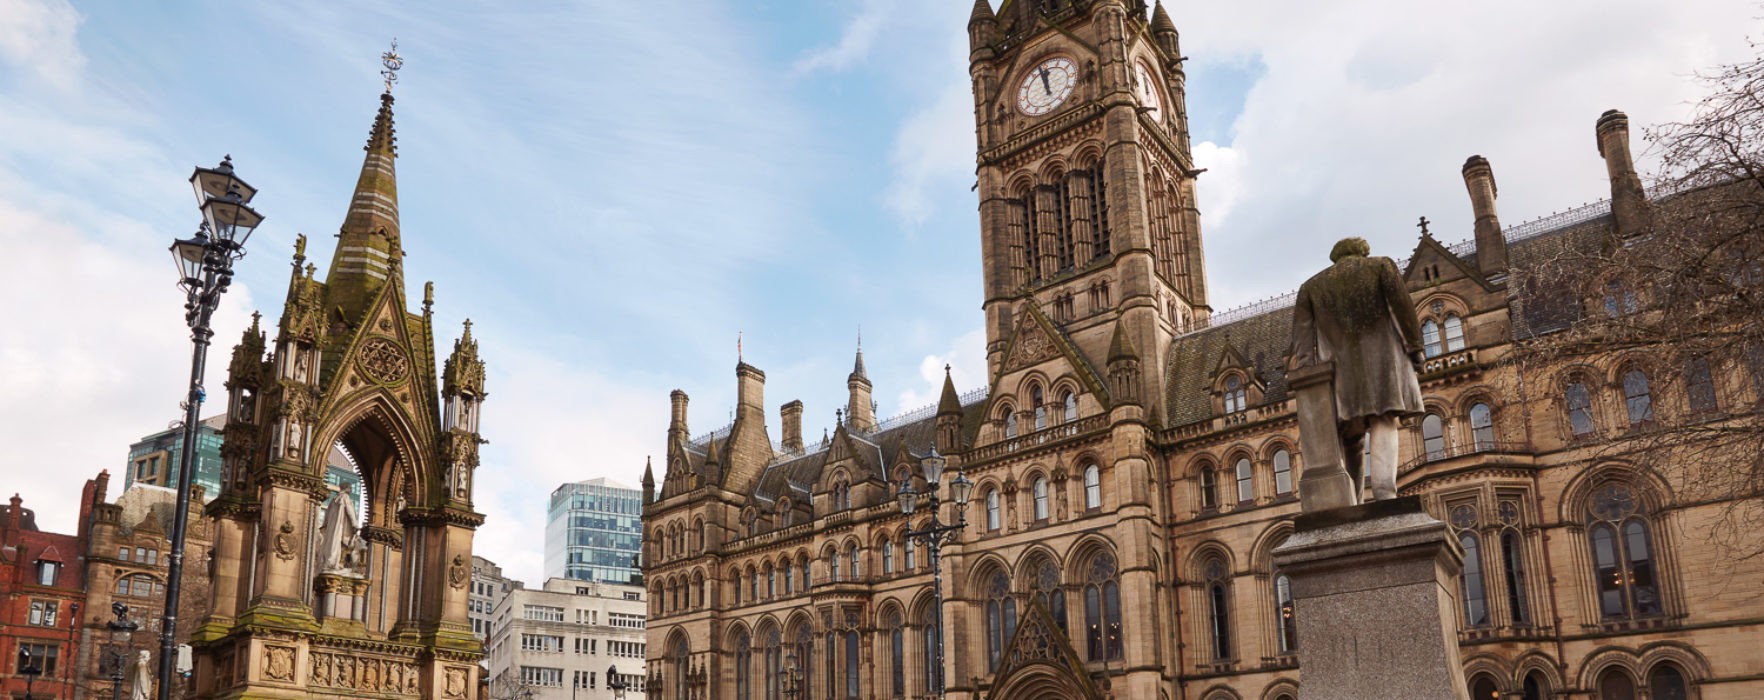 This FREE walking tour of famous film locations and television scenes shot in Manchester is a MUST